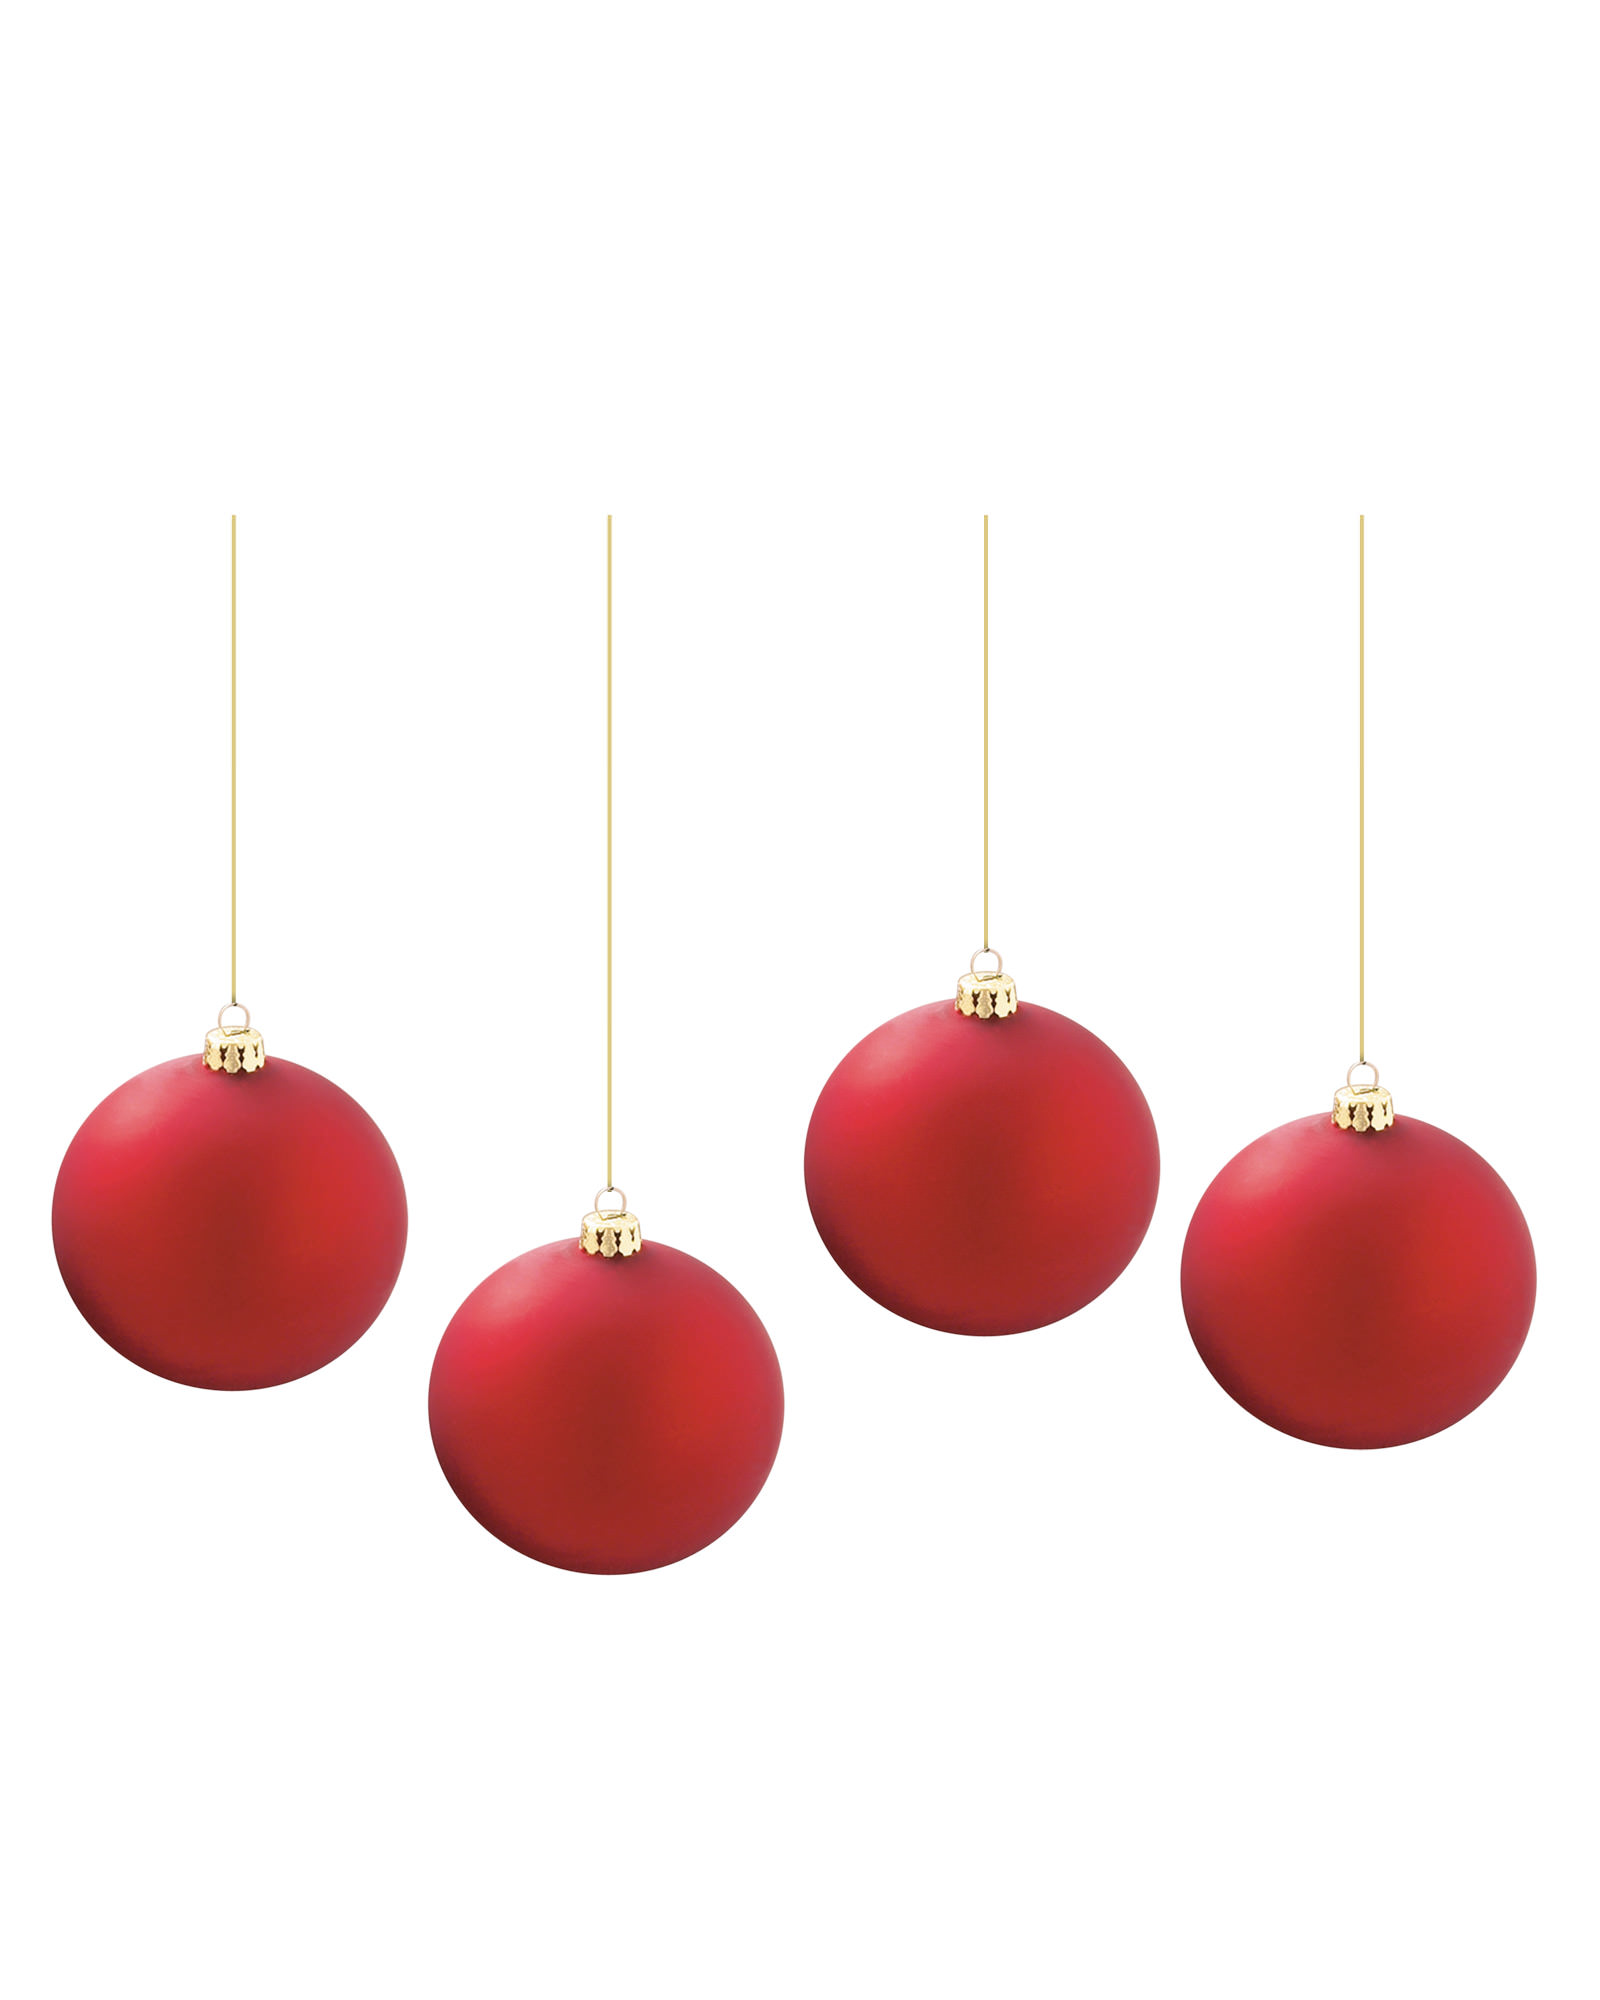 Plain Jane Red Christmas Ball Ornaments | Treetopia